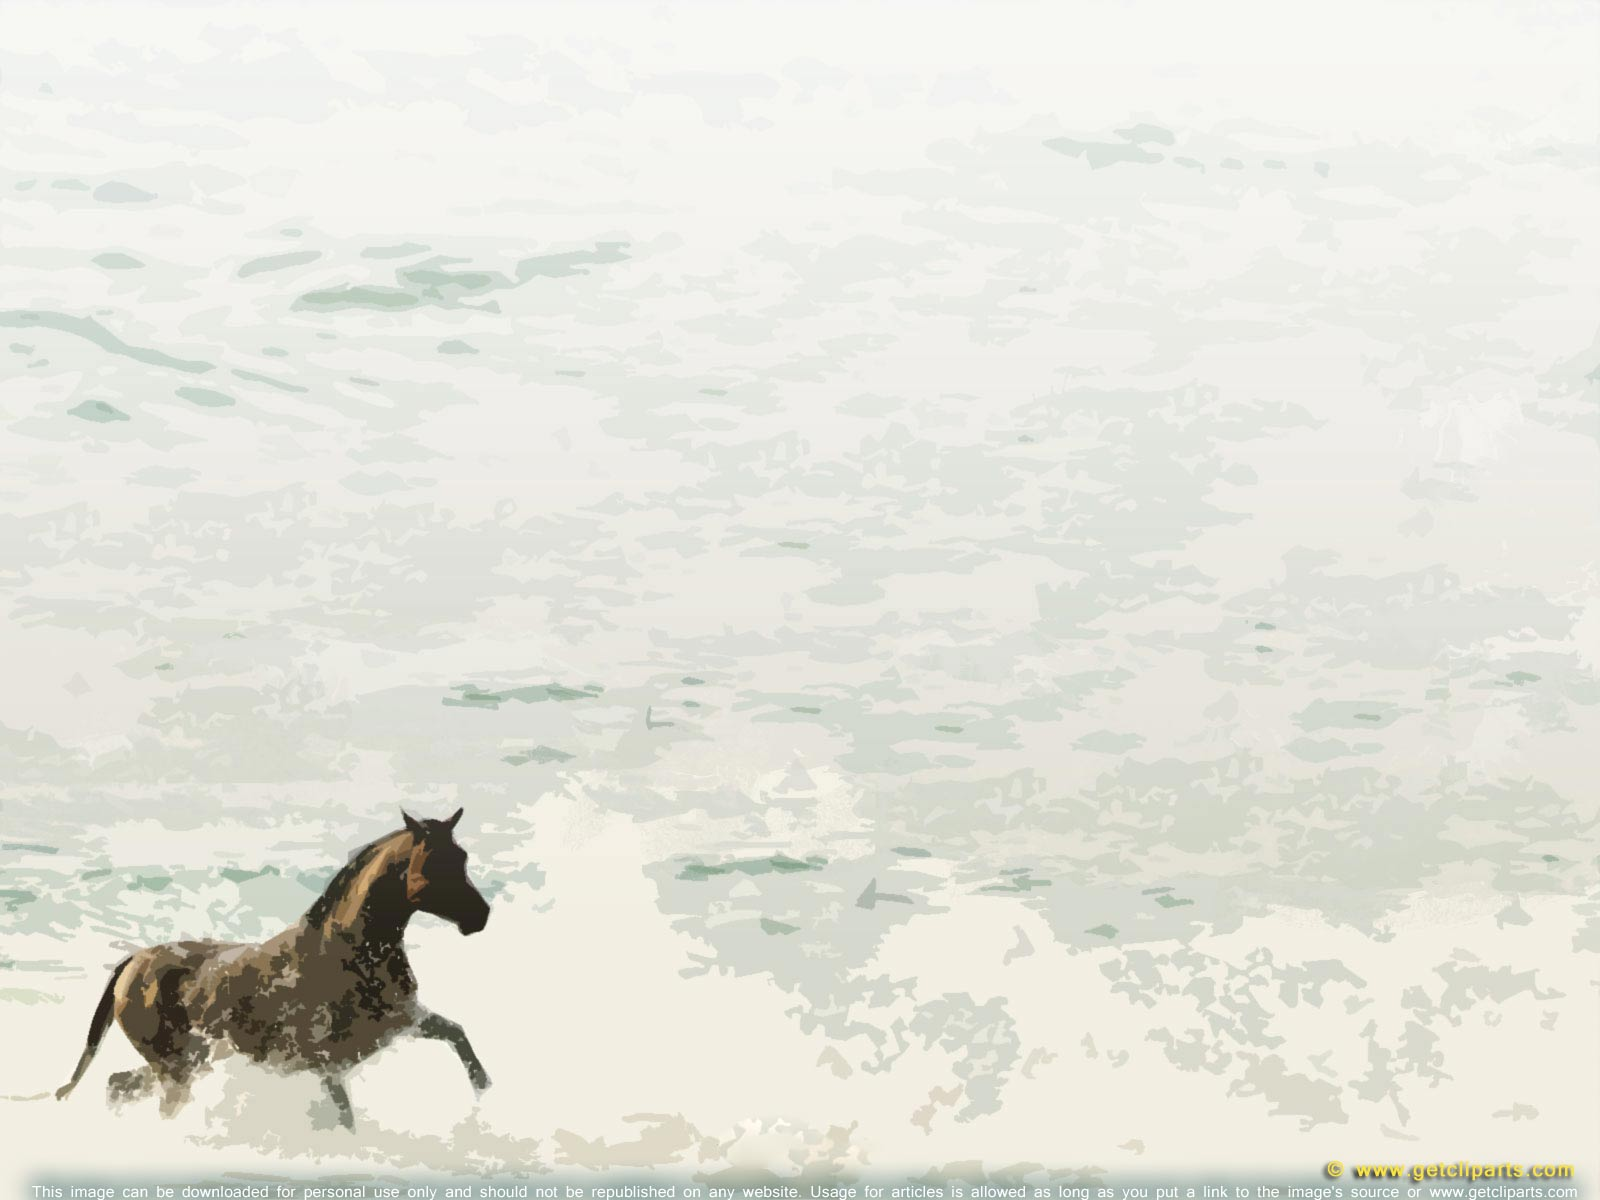 running horse on water getcliparts visual